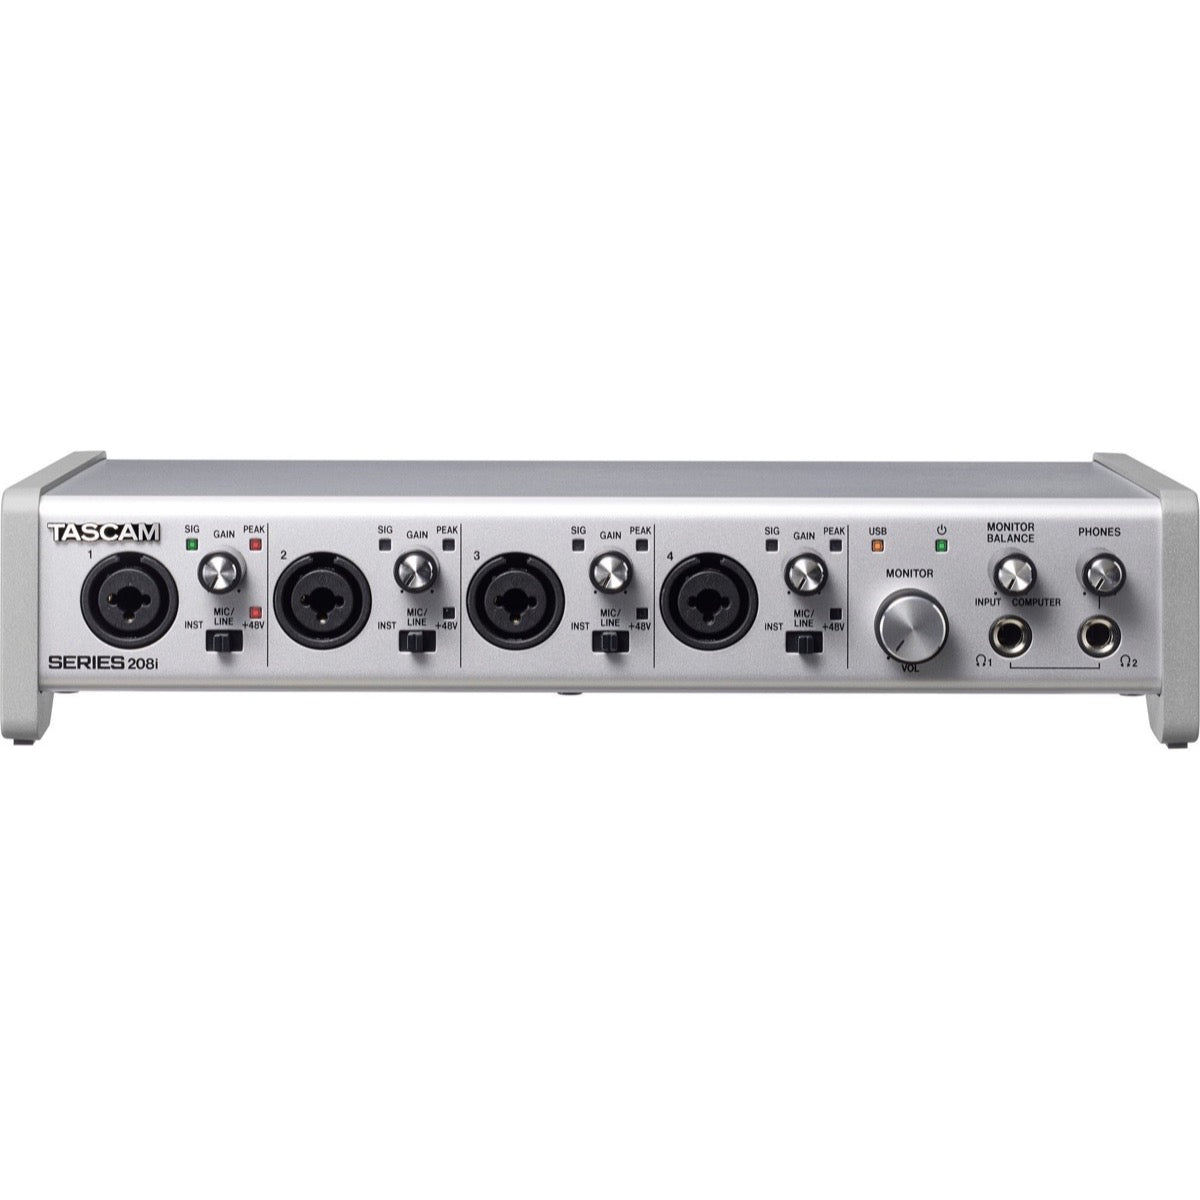 Tascam Series 208i USB Audio Interface